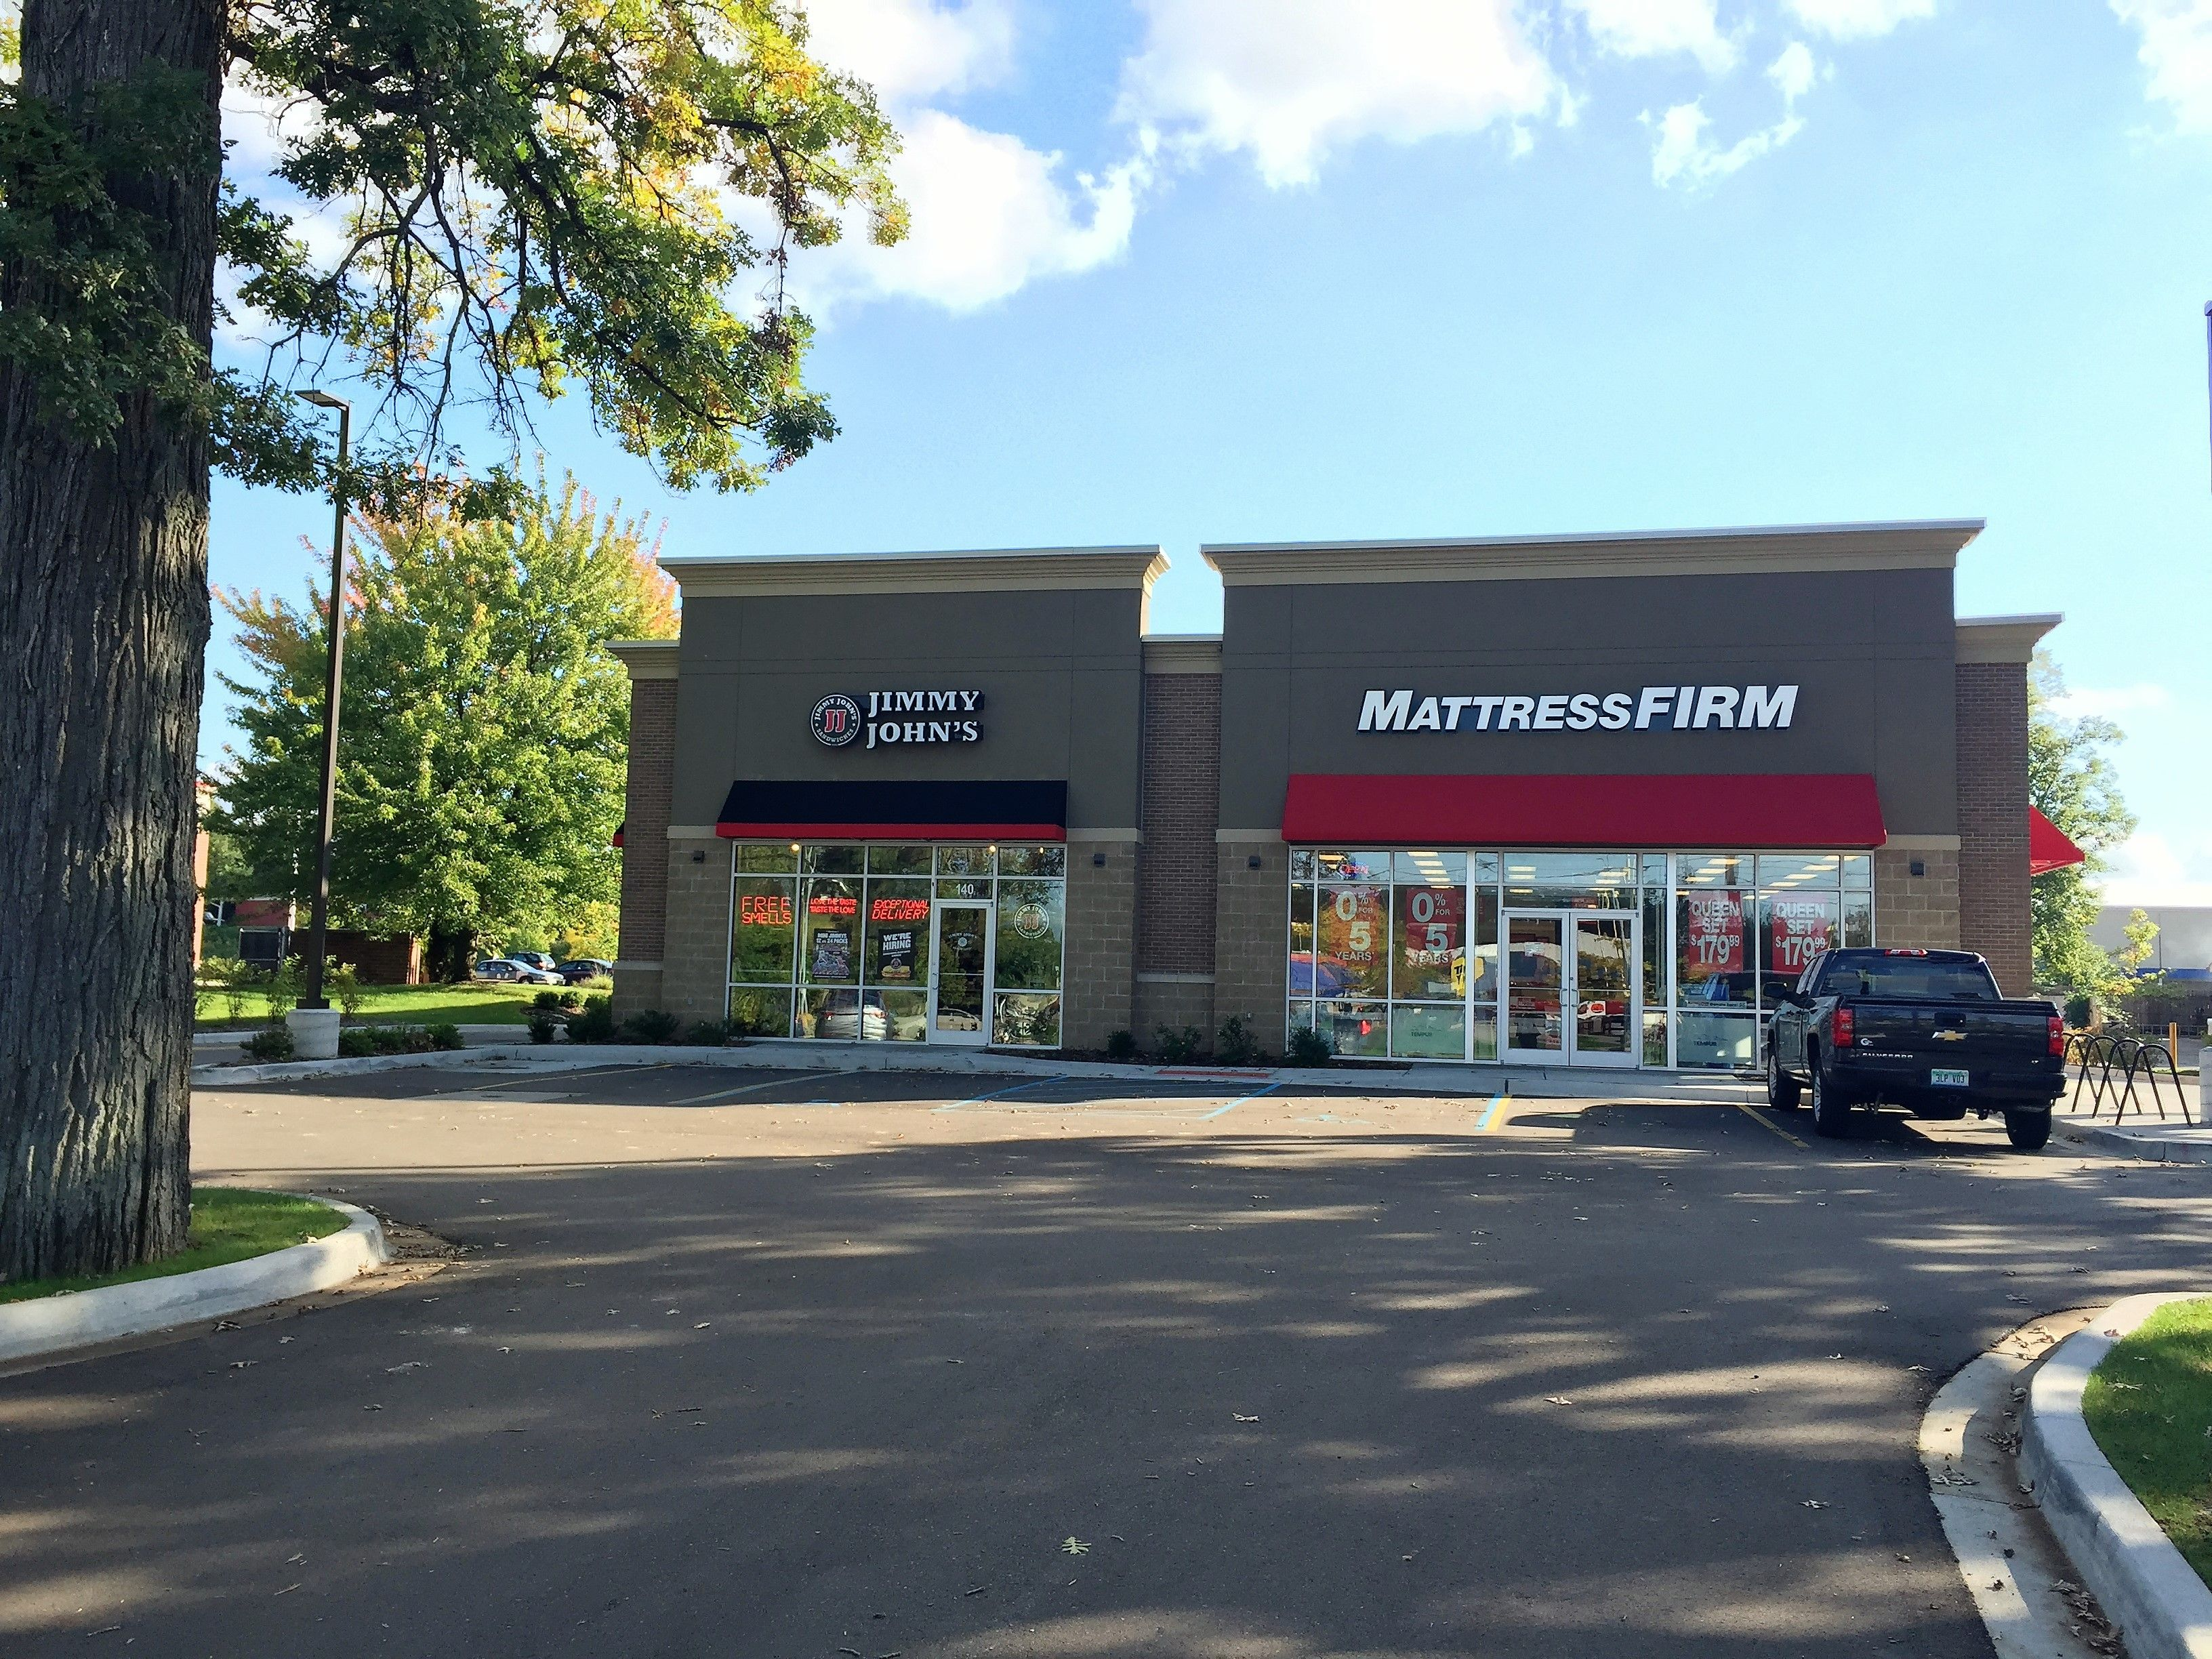 Strip Mall Storefronts Bing Commercial Architecture Strip Mall Store Fronts